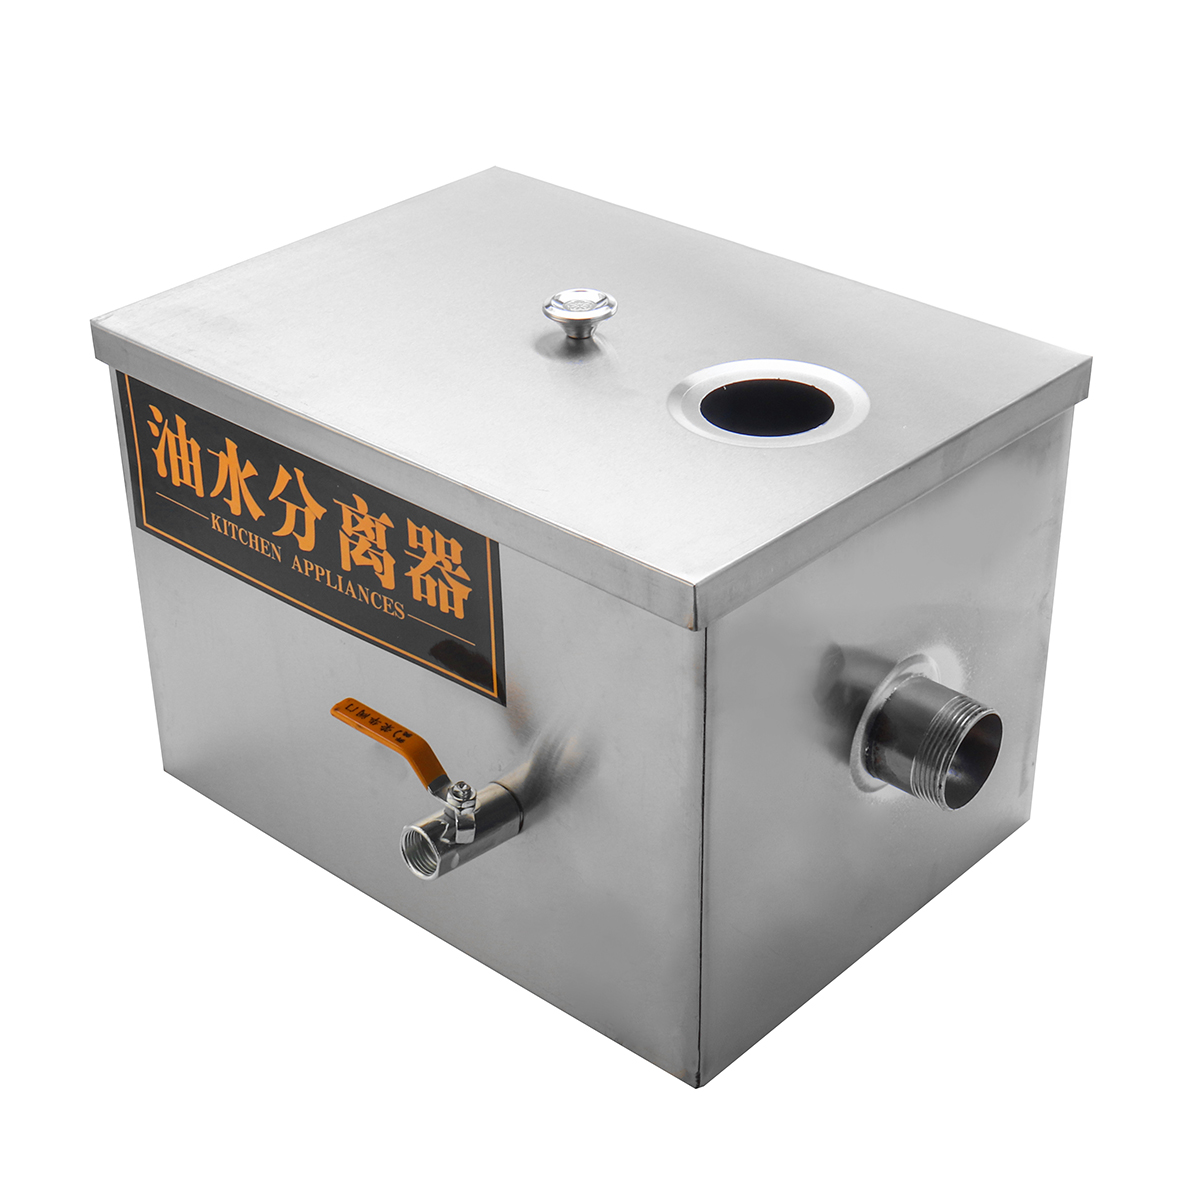 Industrial Kitchen Grease Trap: Commercial Grease Trap Interceptor Stainless Steel